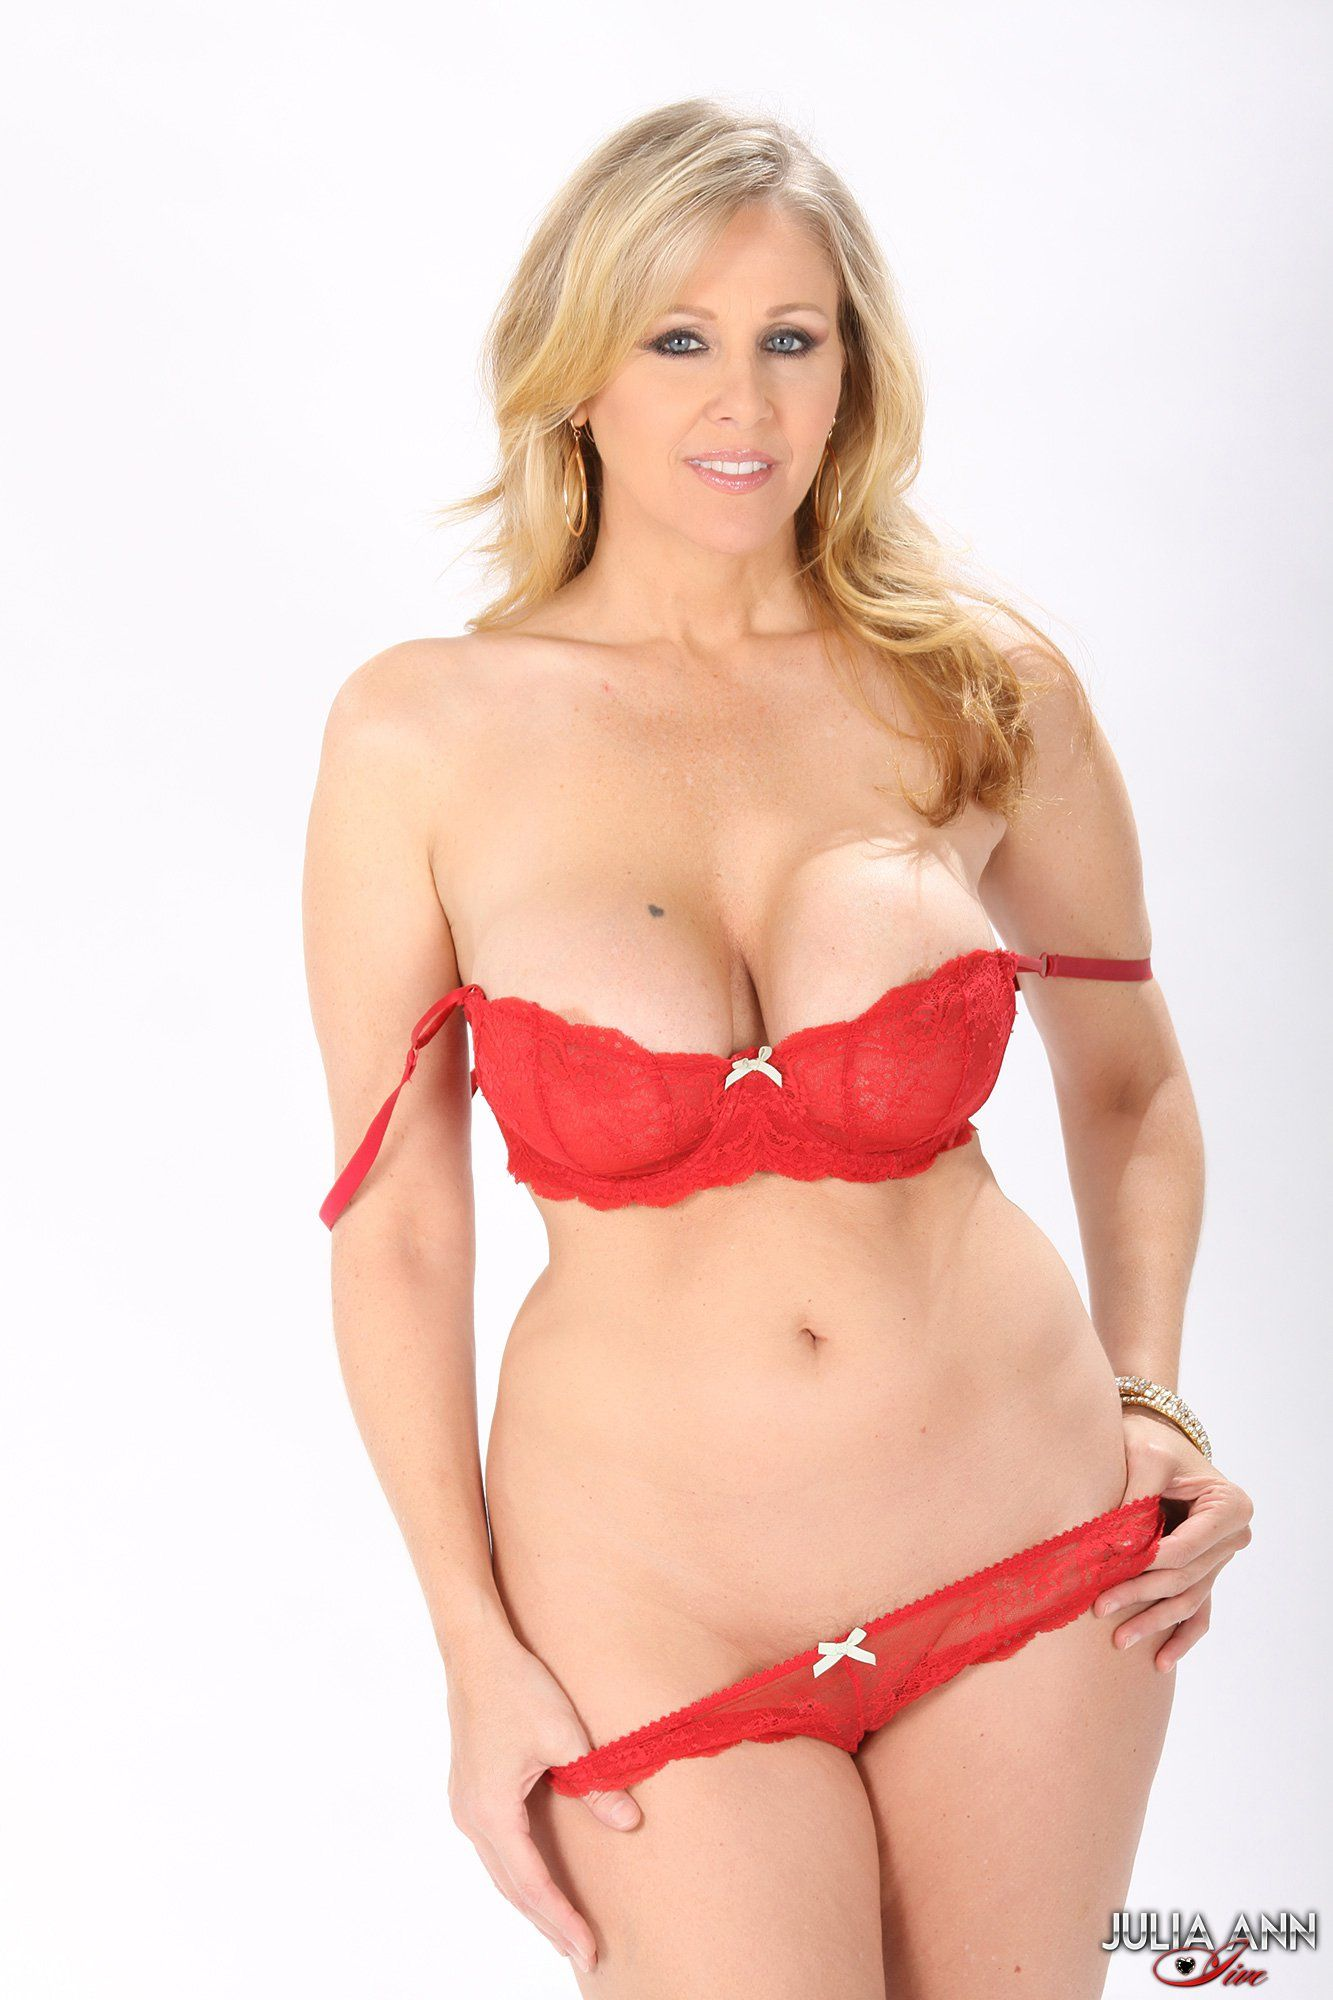 Mas Julia ann yes Johnny!